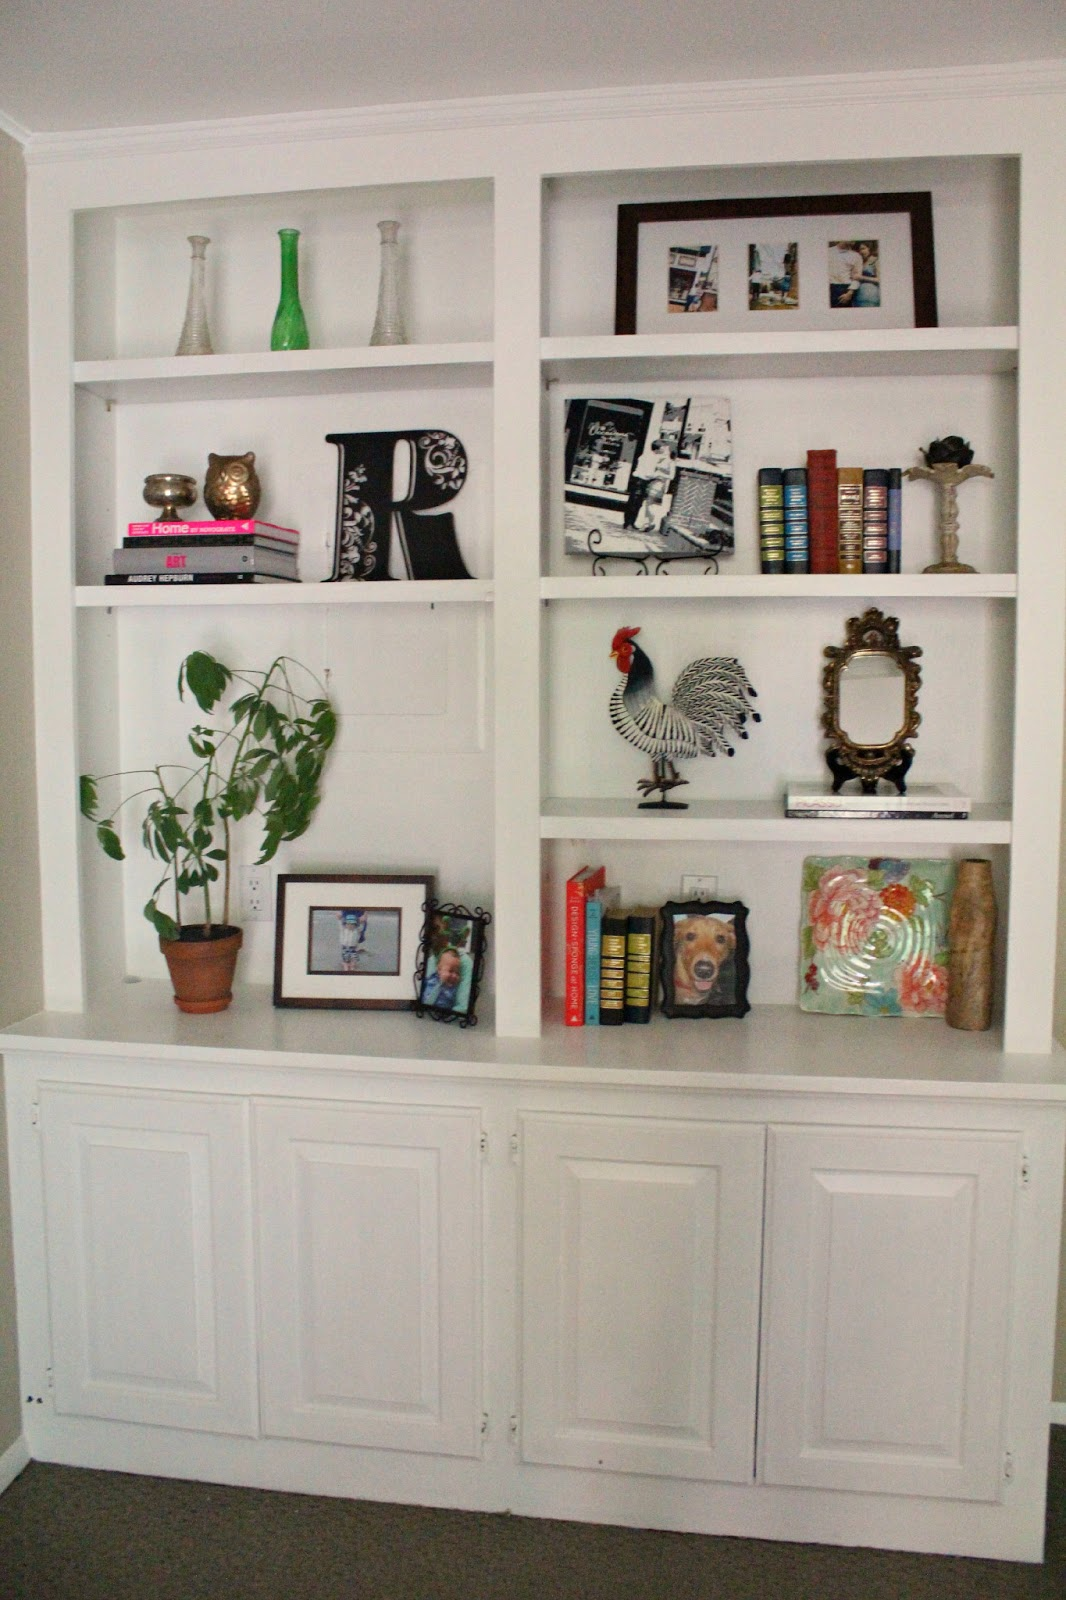 Living room wall shelves decorating ideas - Decorating Shelves In Living Room Ten June My Living Room Built In Bookshelves Are Styled